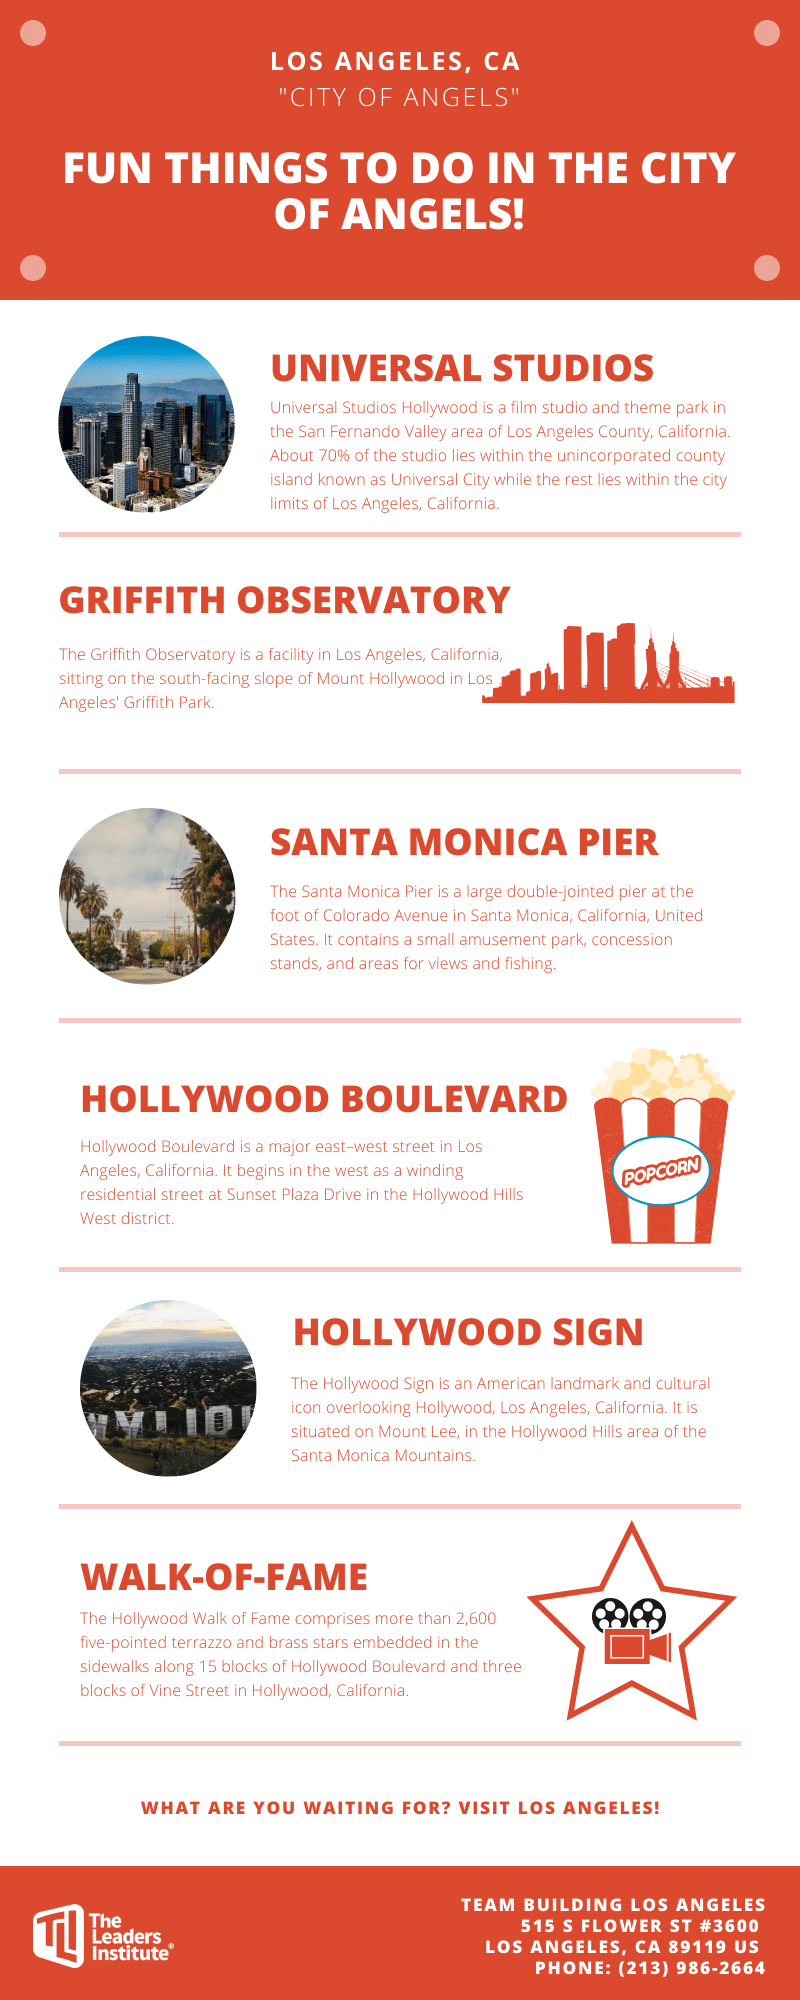 Fun things to do in Los Angeles.